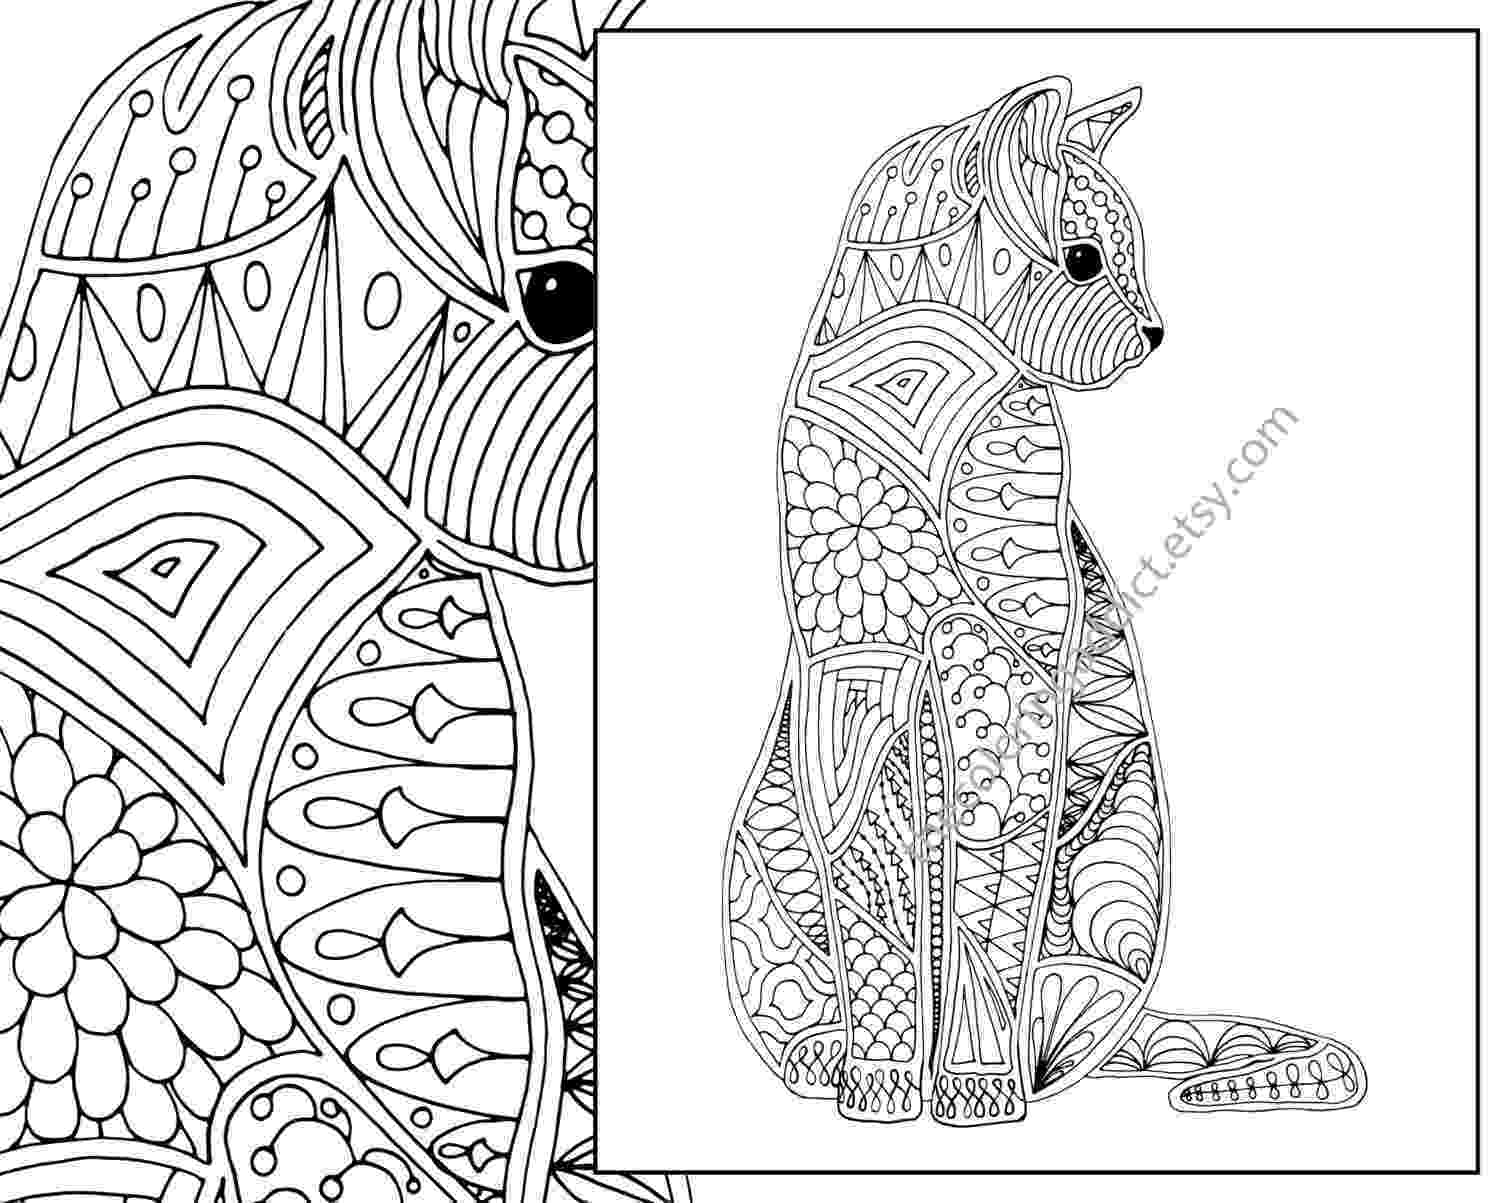 free online coloring pages for adults cats cat coloring page advanced coloring page adult coloring pages cats for free adults online coloring